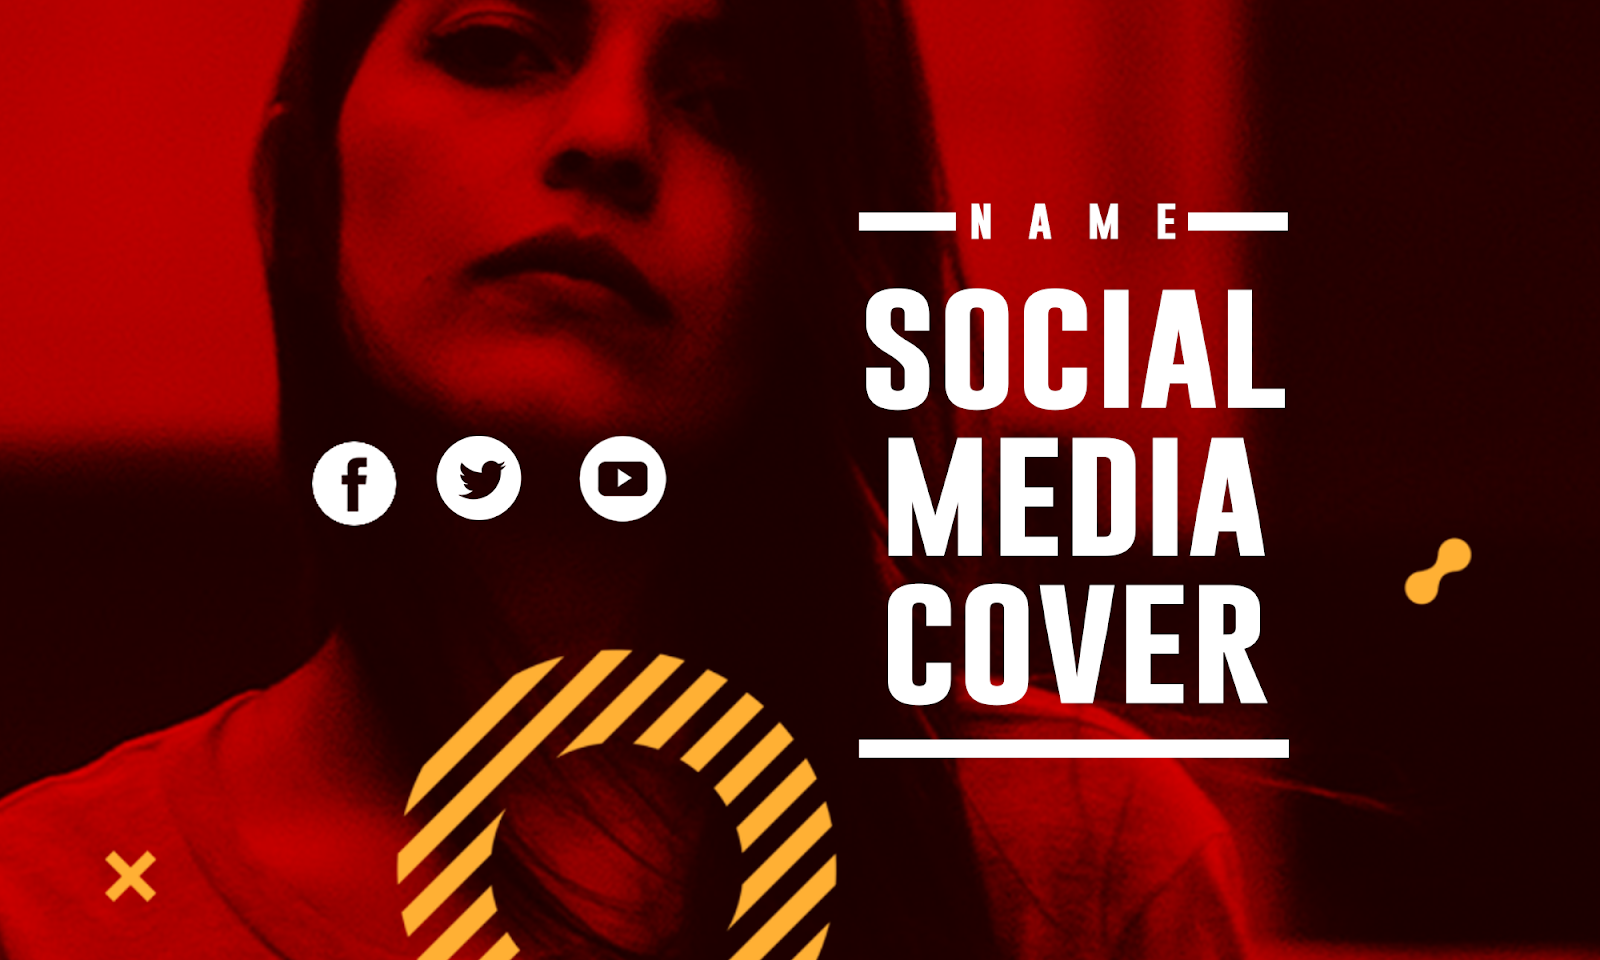 Free Download Social Media COVER Template - PSD File